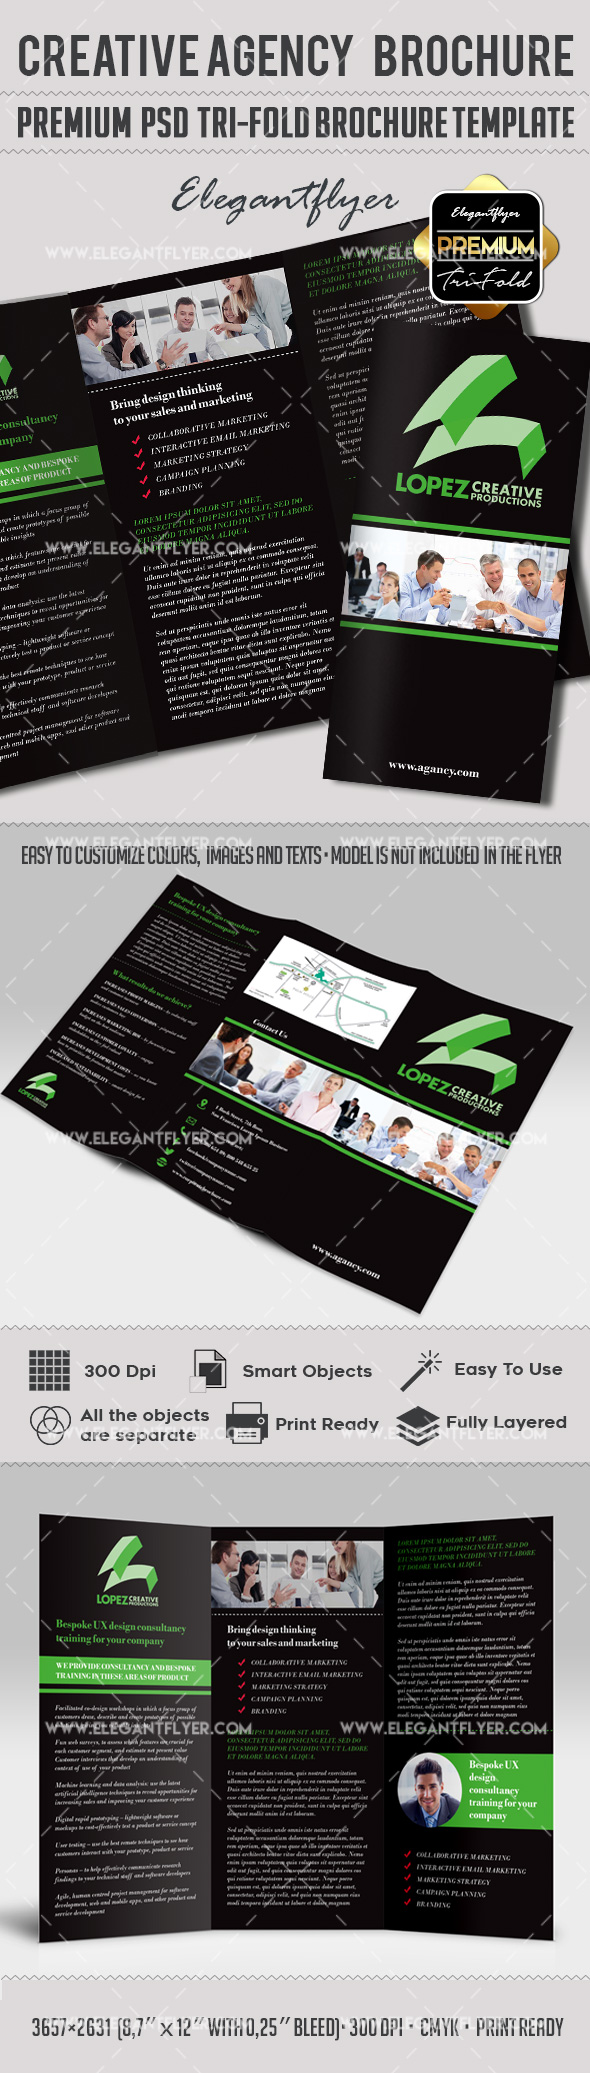 Tri-Fold Brochure for Creative Agency